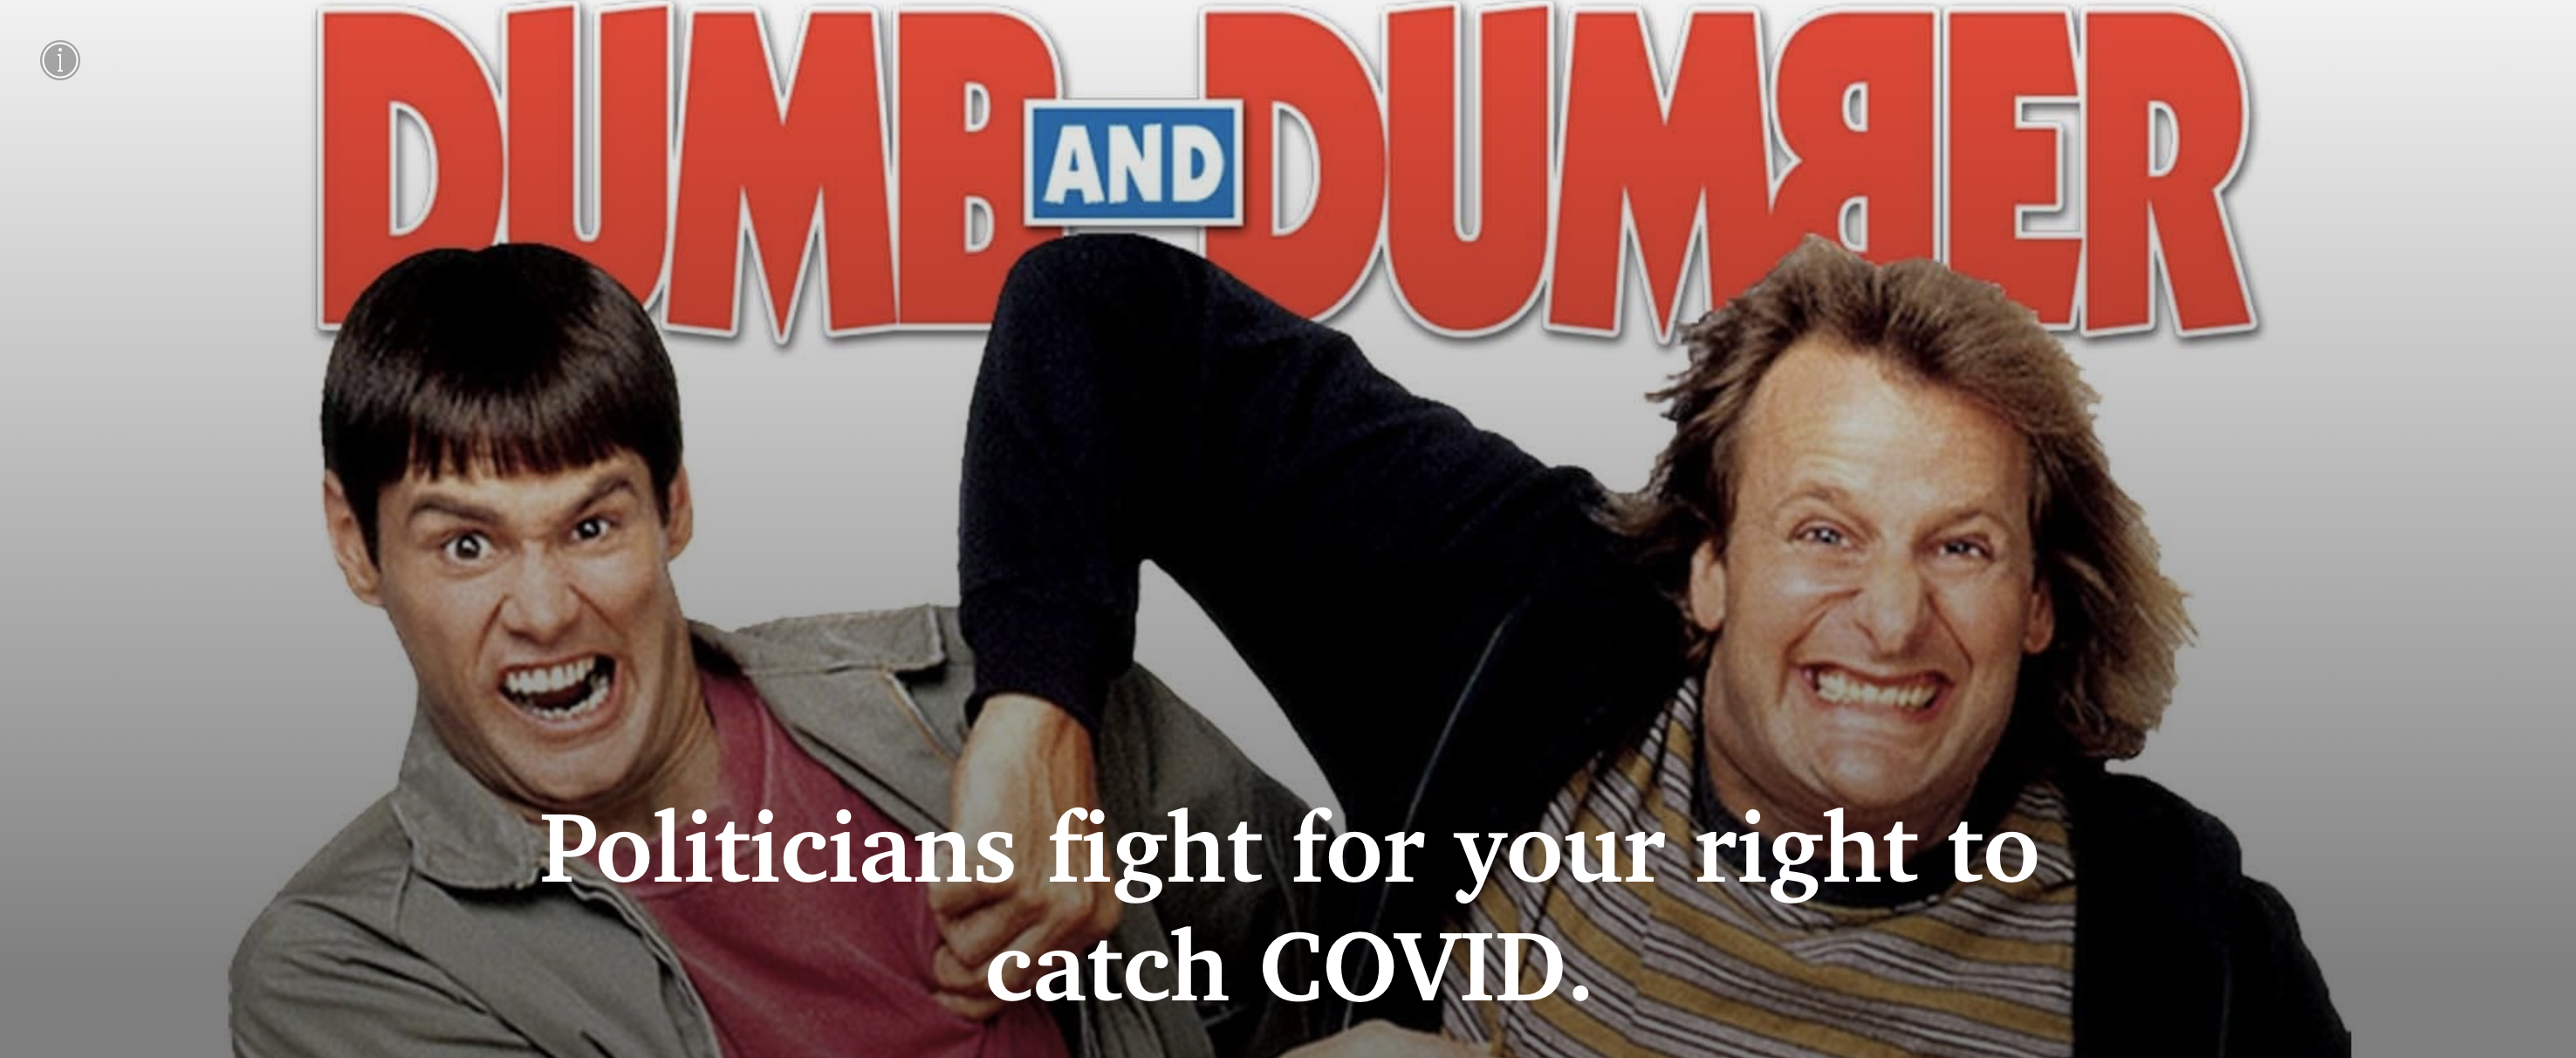 Dumb & dumber. Politicians fight for your right to catch COVID.